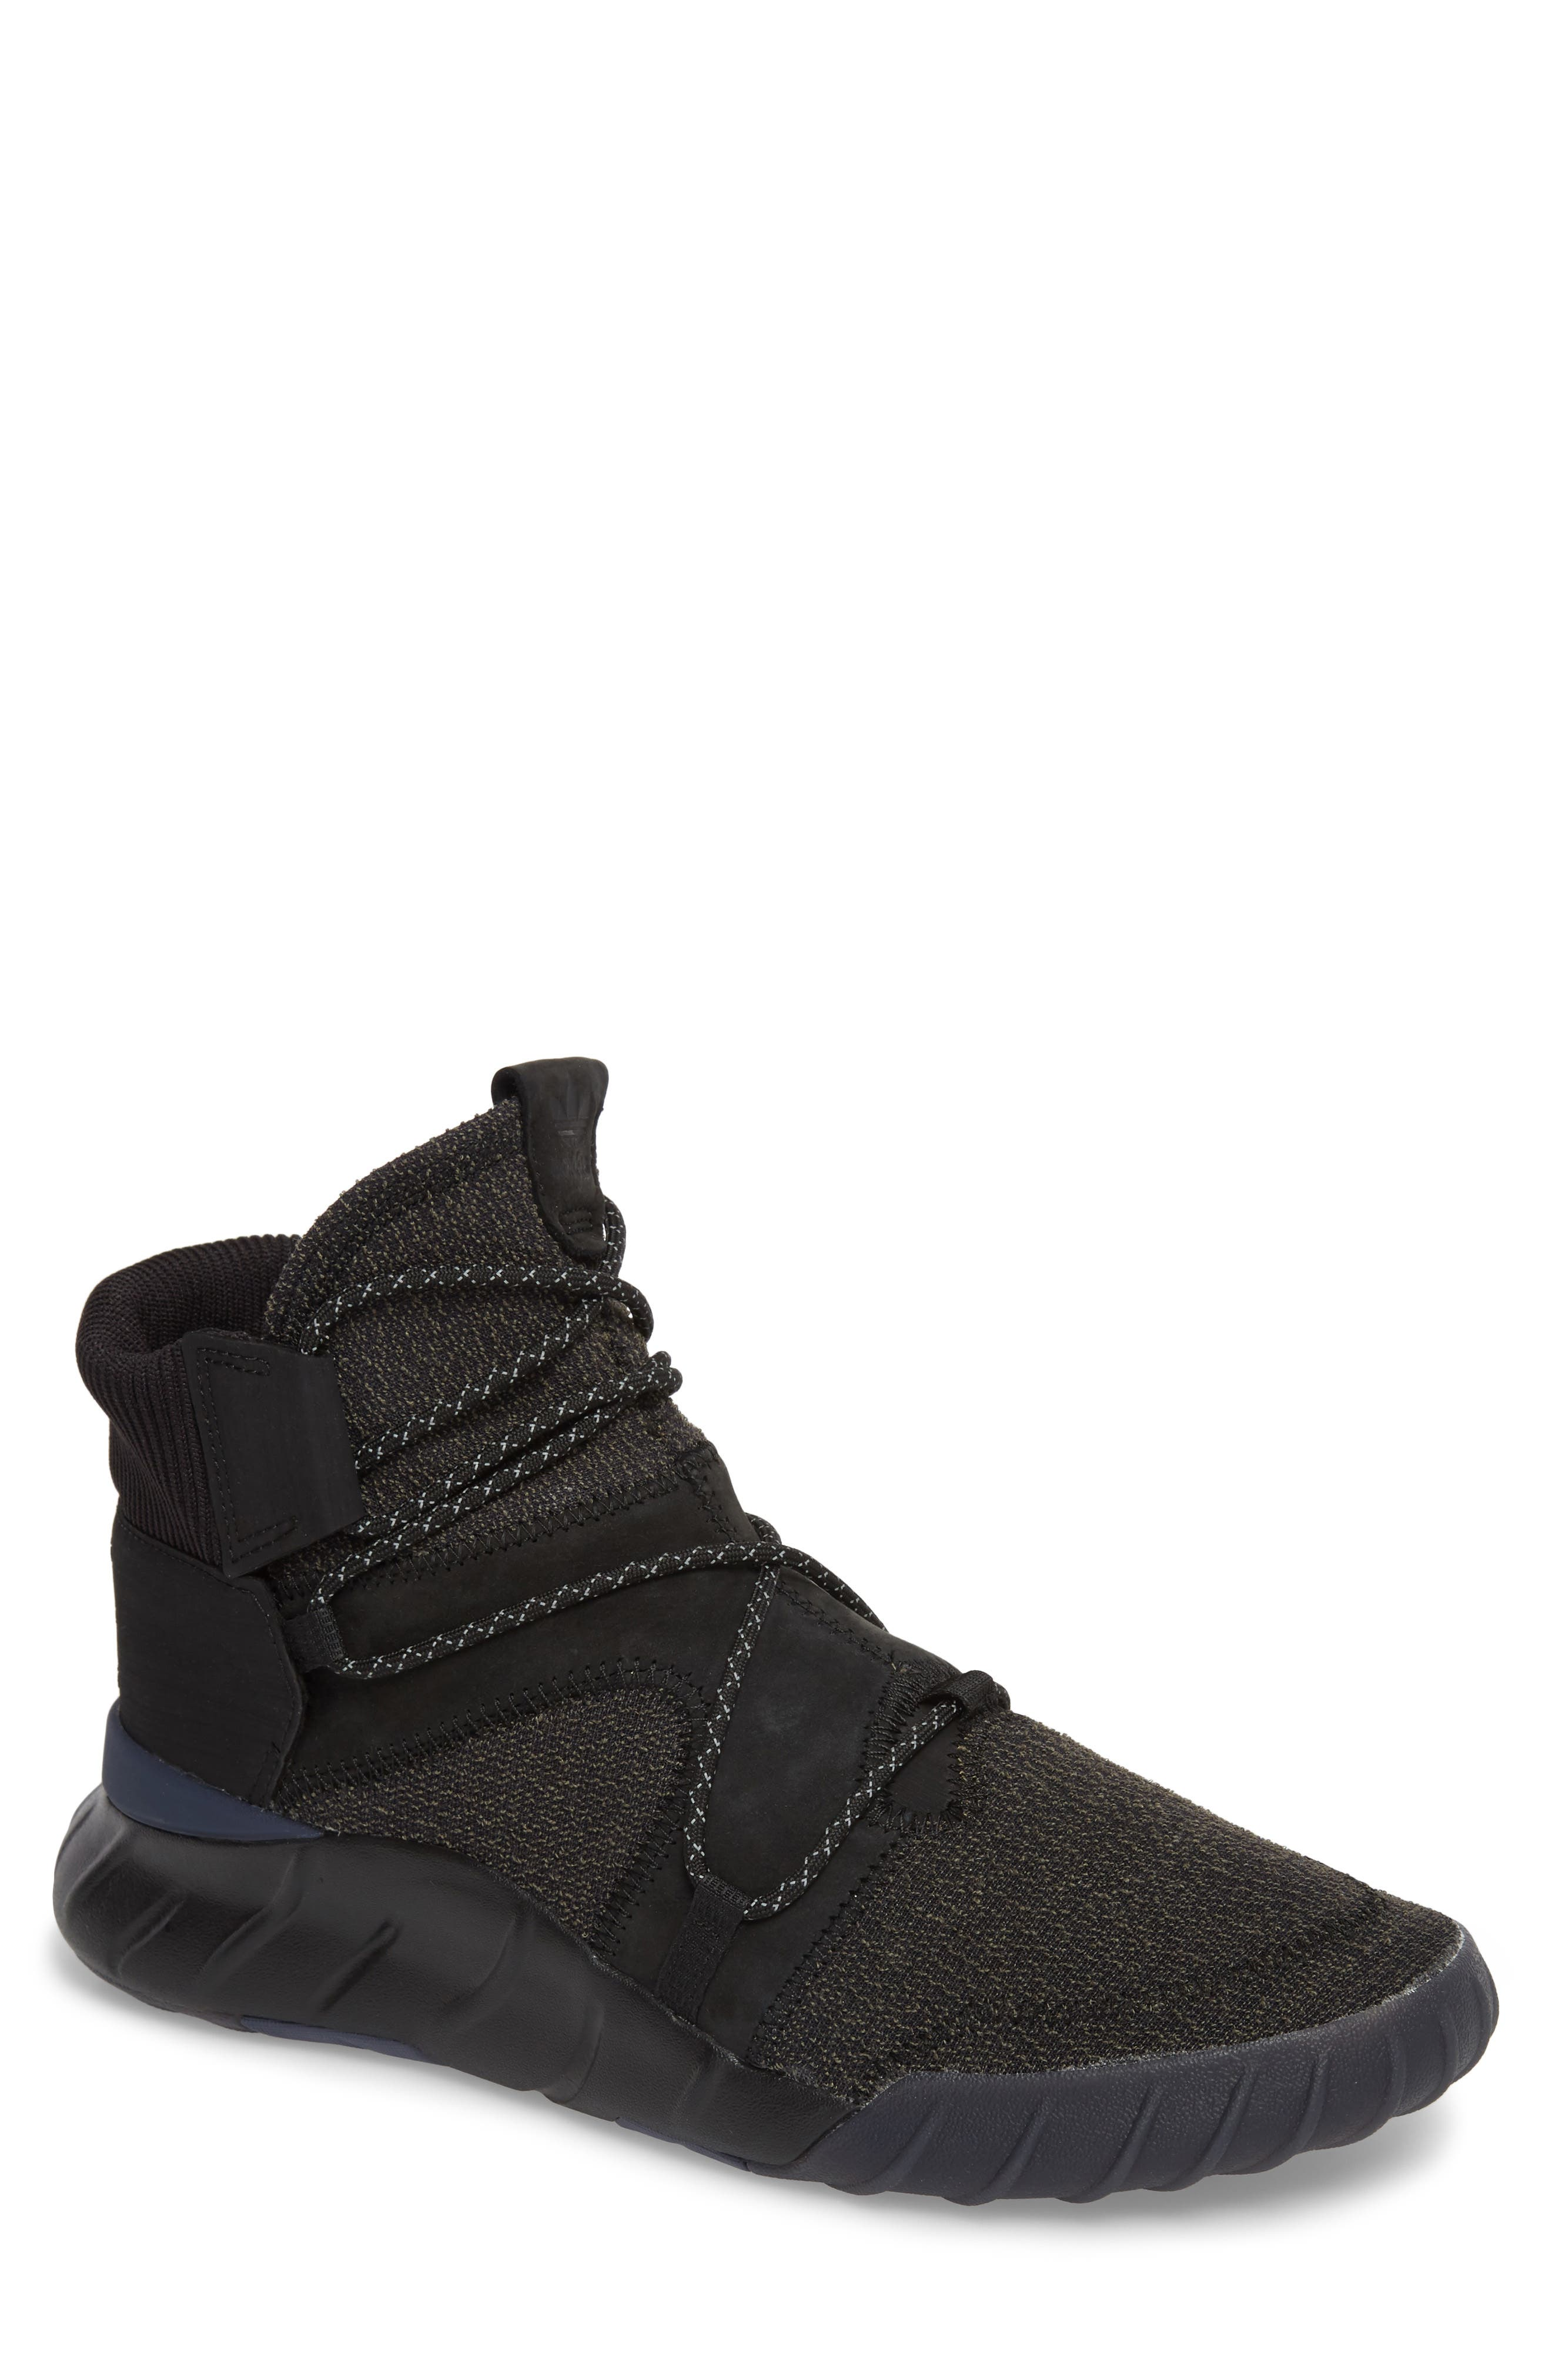 Tubular X 2.0 High Top Sneaker,                         Main,                         color,